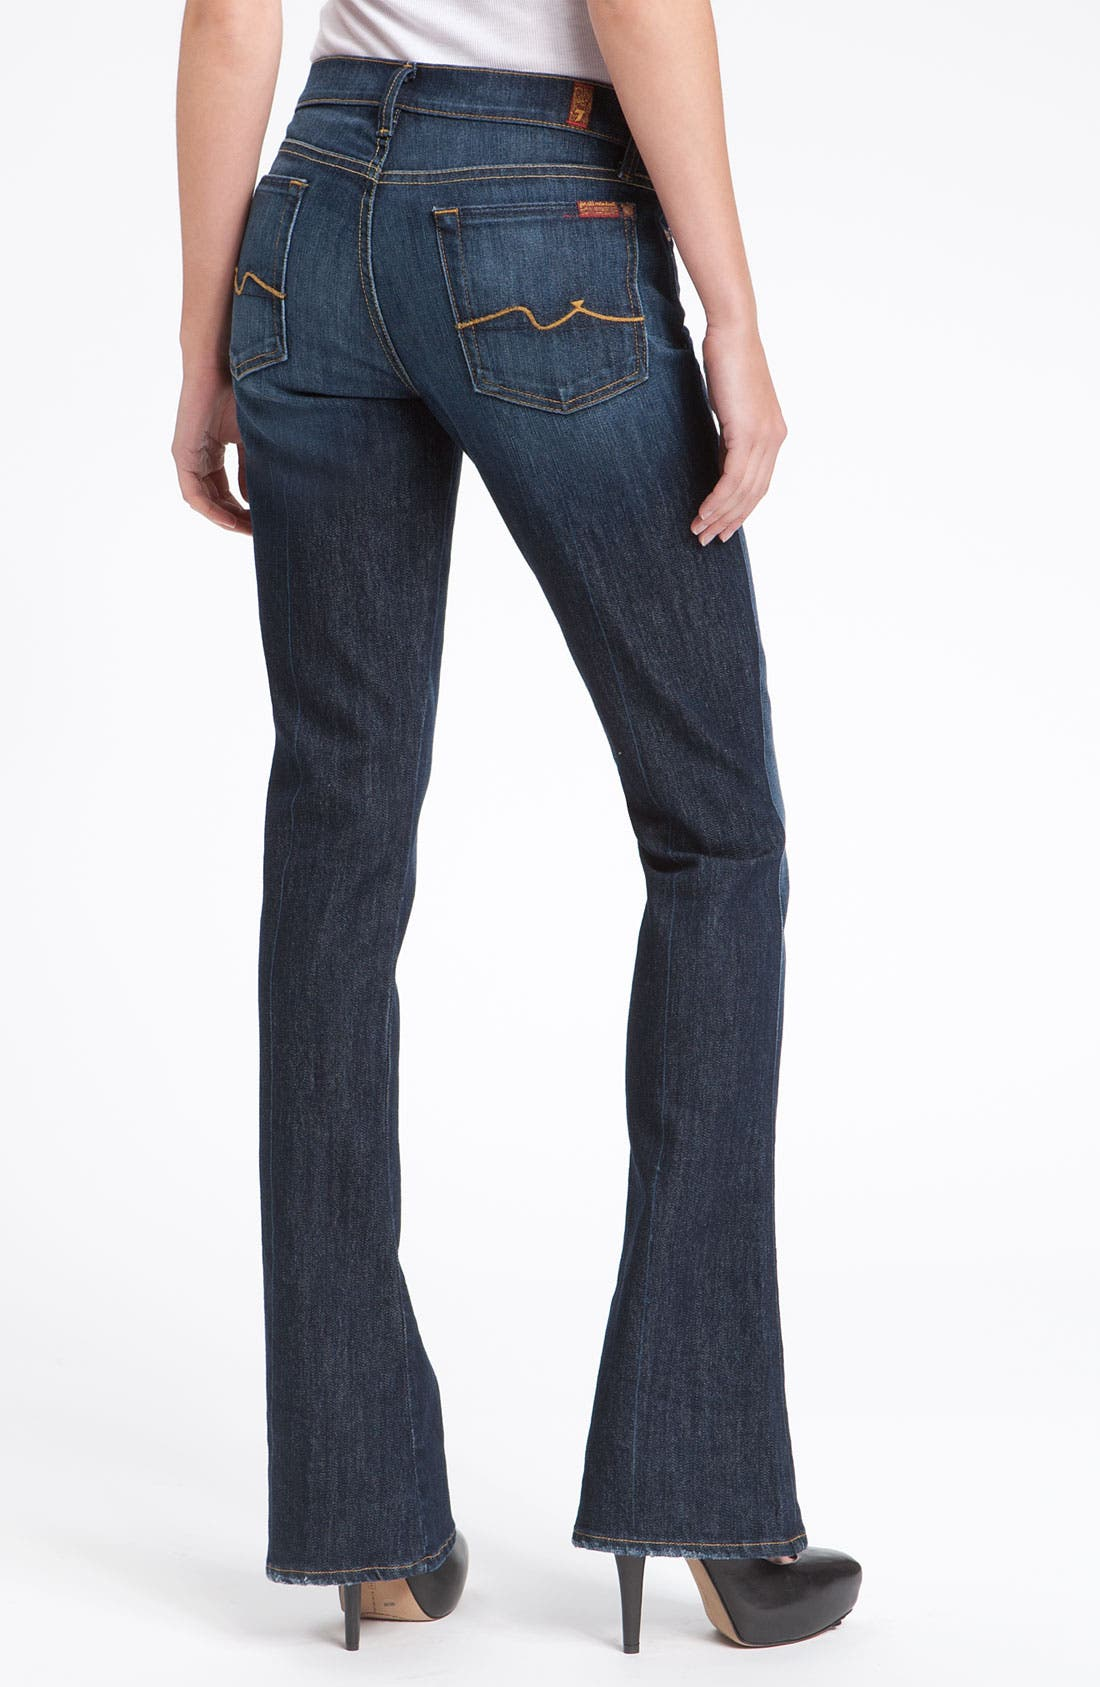 7 For All Mankind 'Kaylie' Bootcut Jeans,                             Alternate thumbnail 3, color,                             400